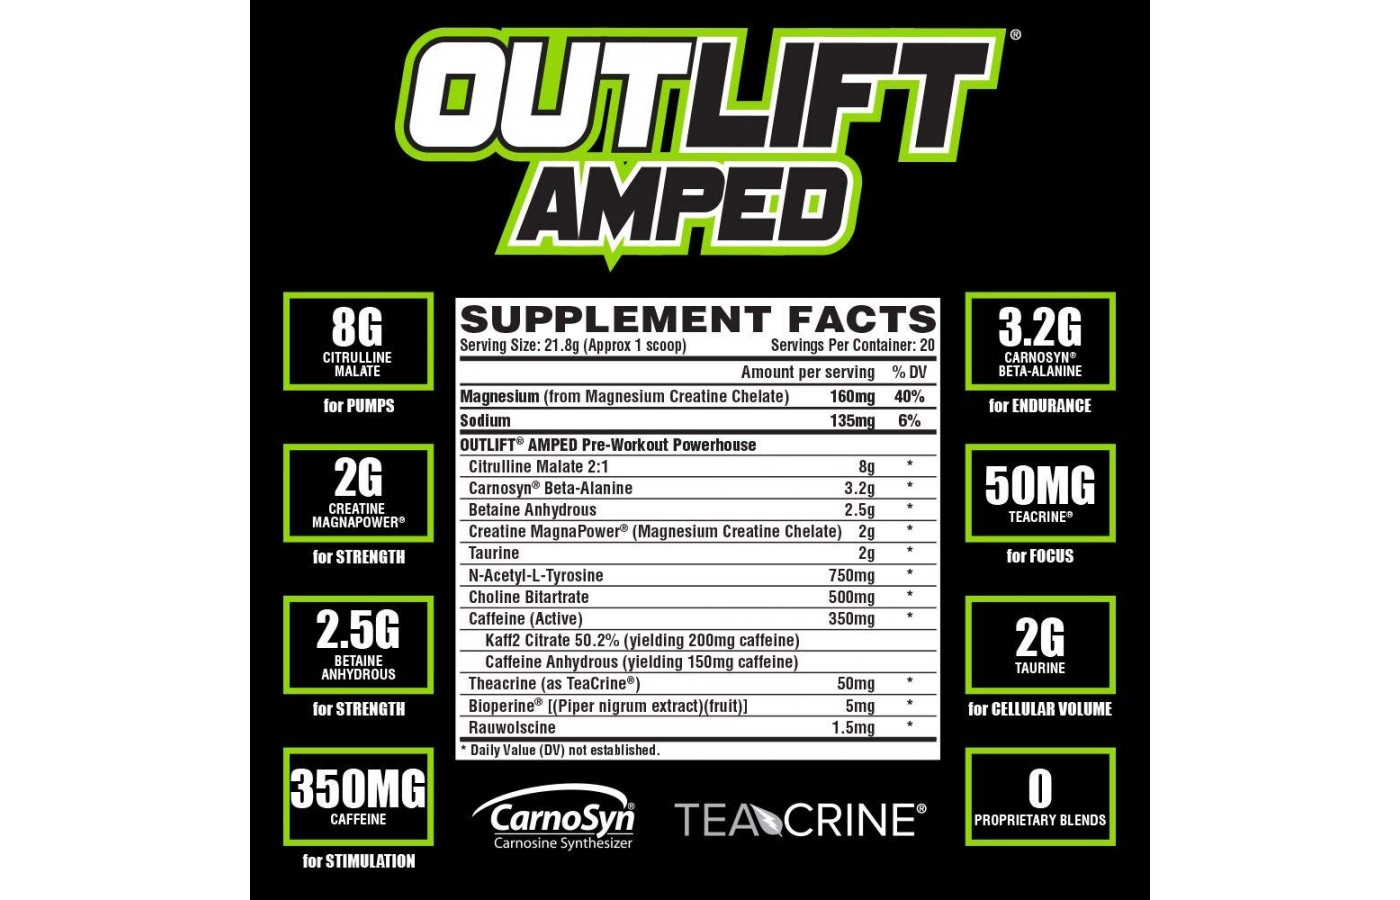 amped sup facts